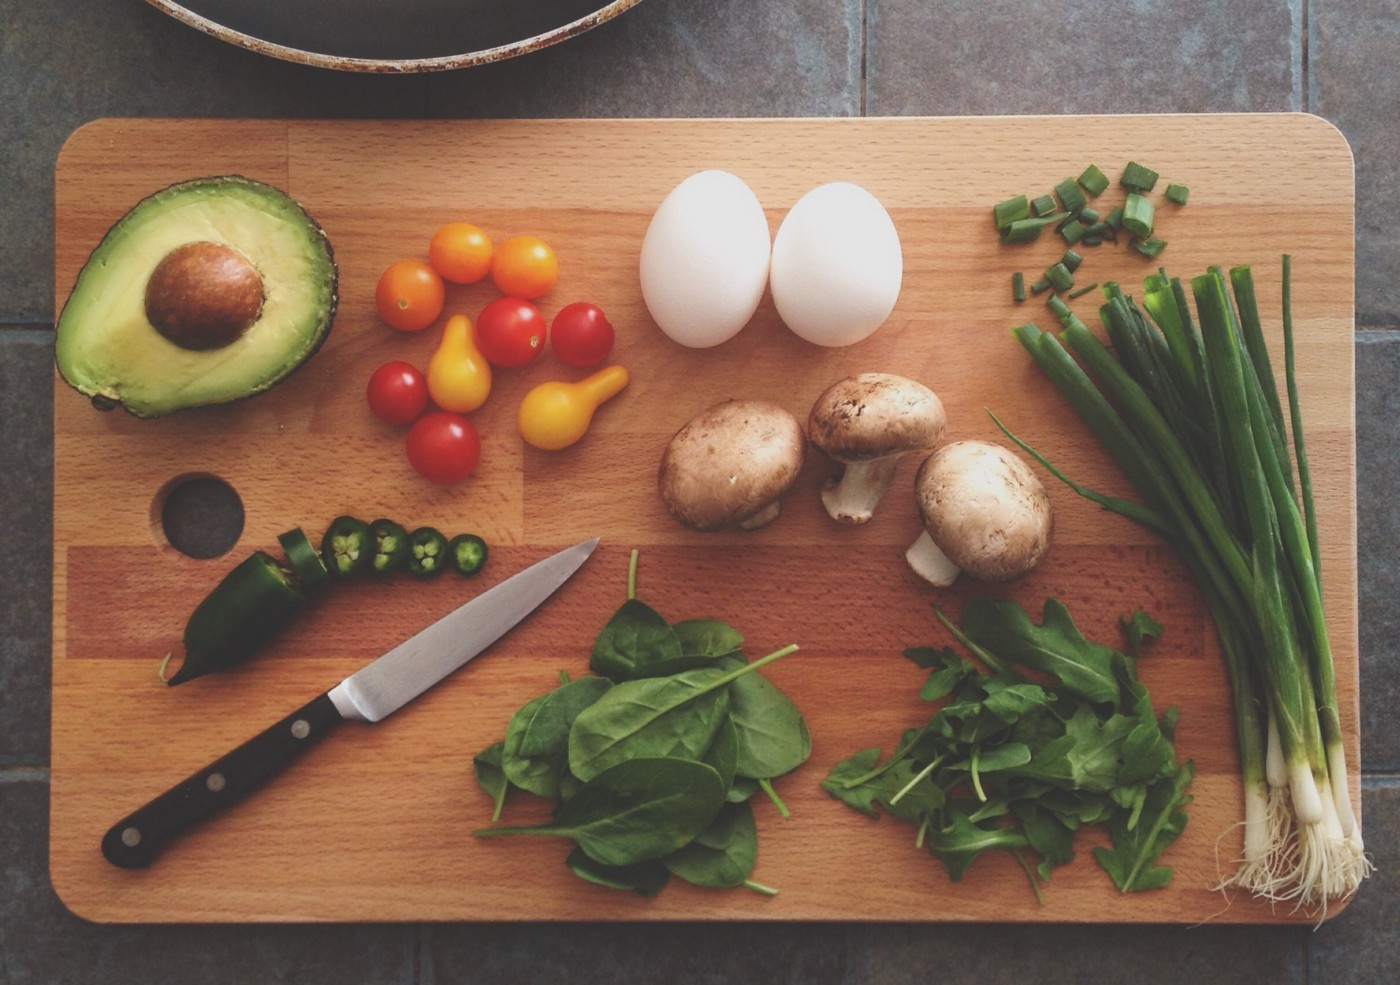 chopping board with vegetables, eggs, herbs and knife